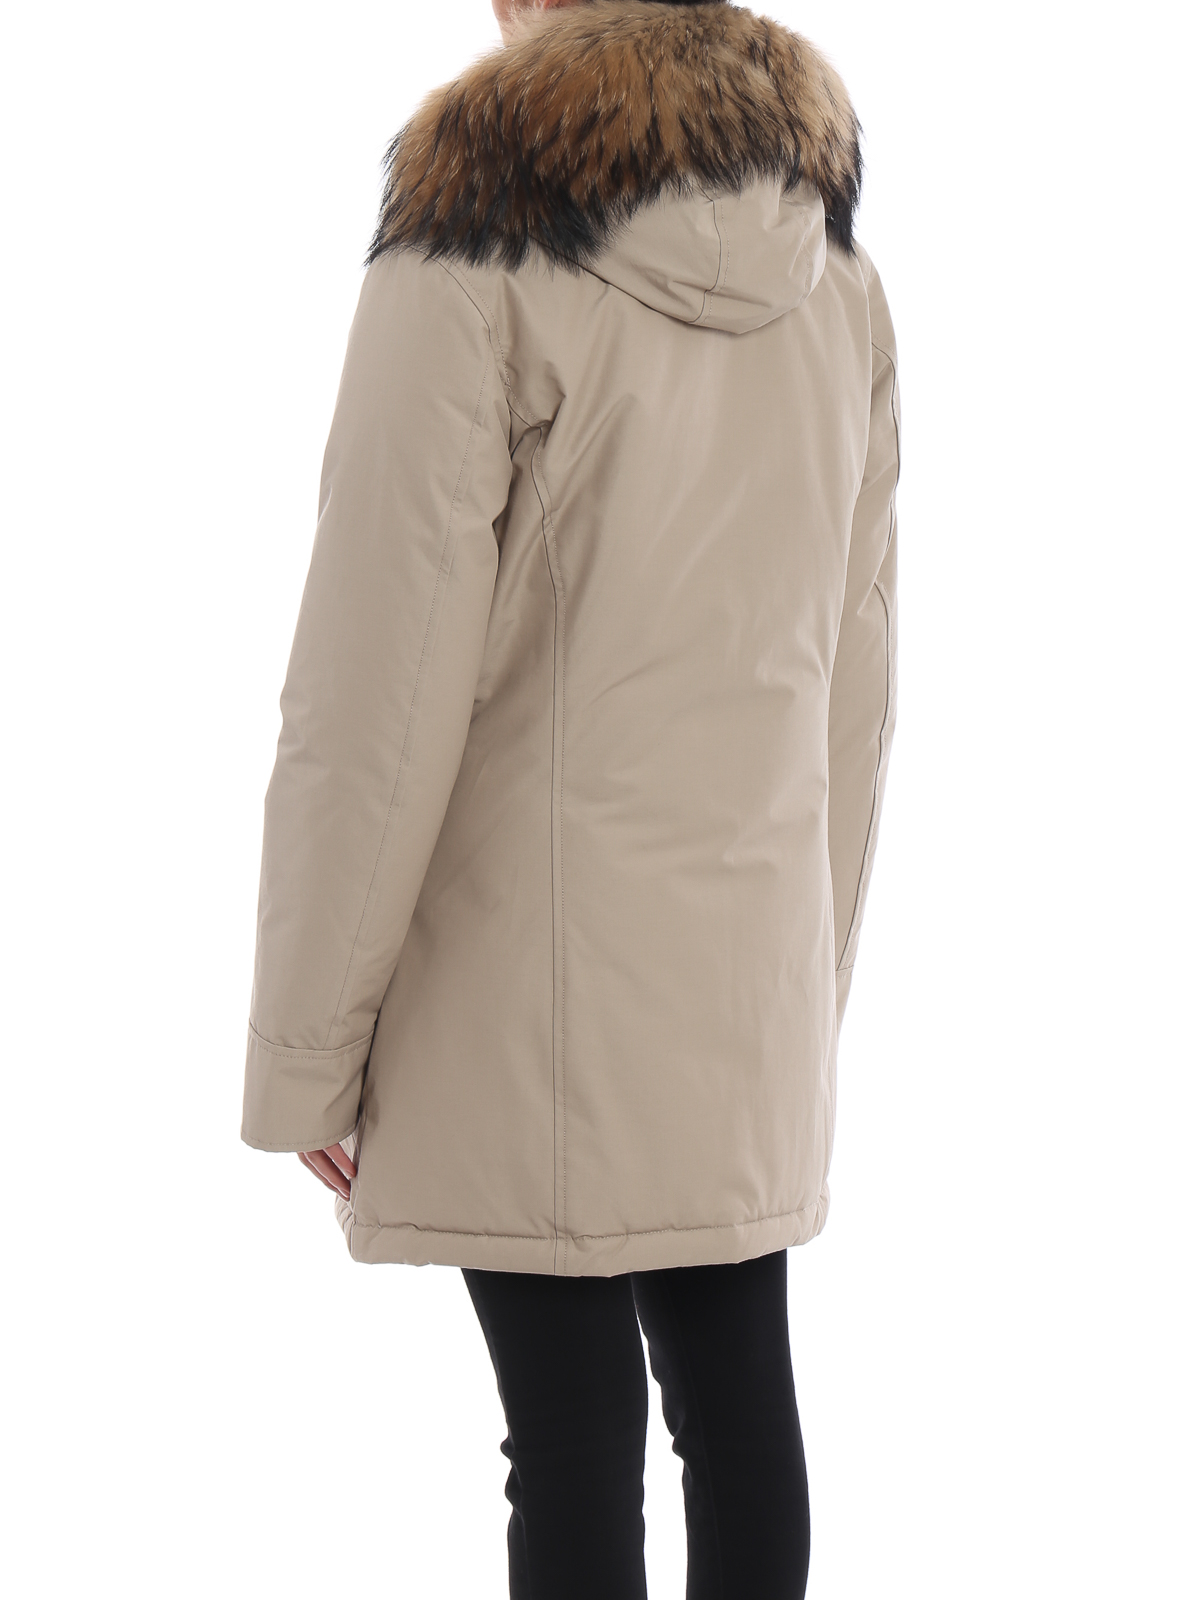 a9b51c1586 arctic-parka-pearl-coated-cotton-padded-coat-shop-online-woolrich-00000146084f00s004.jpg